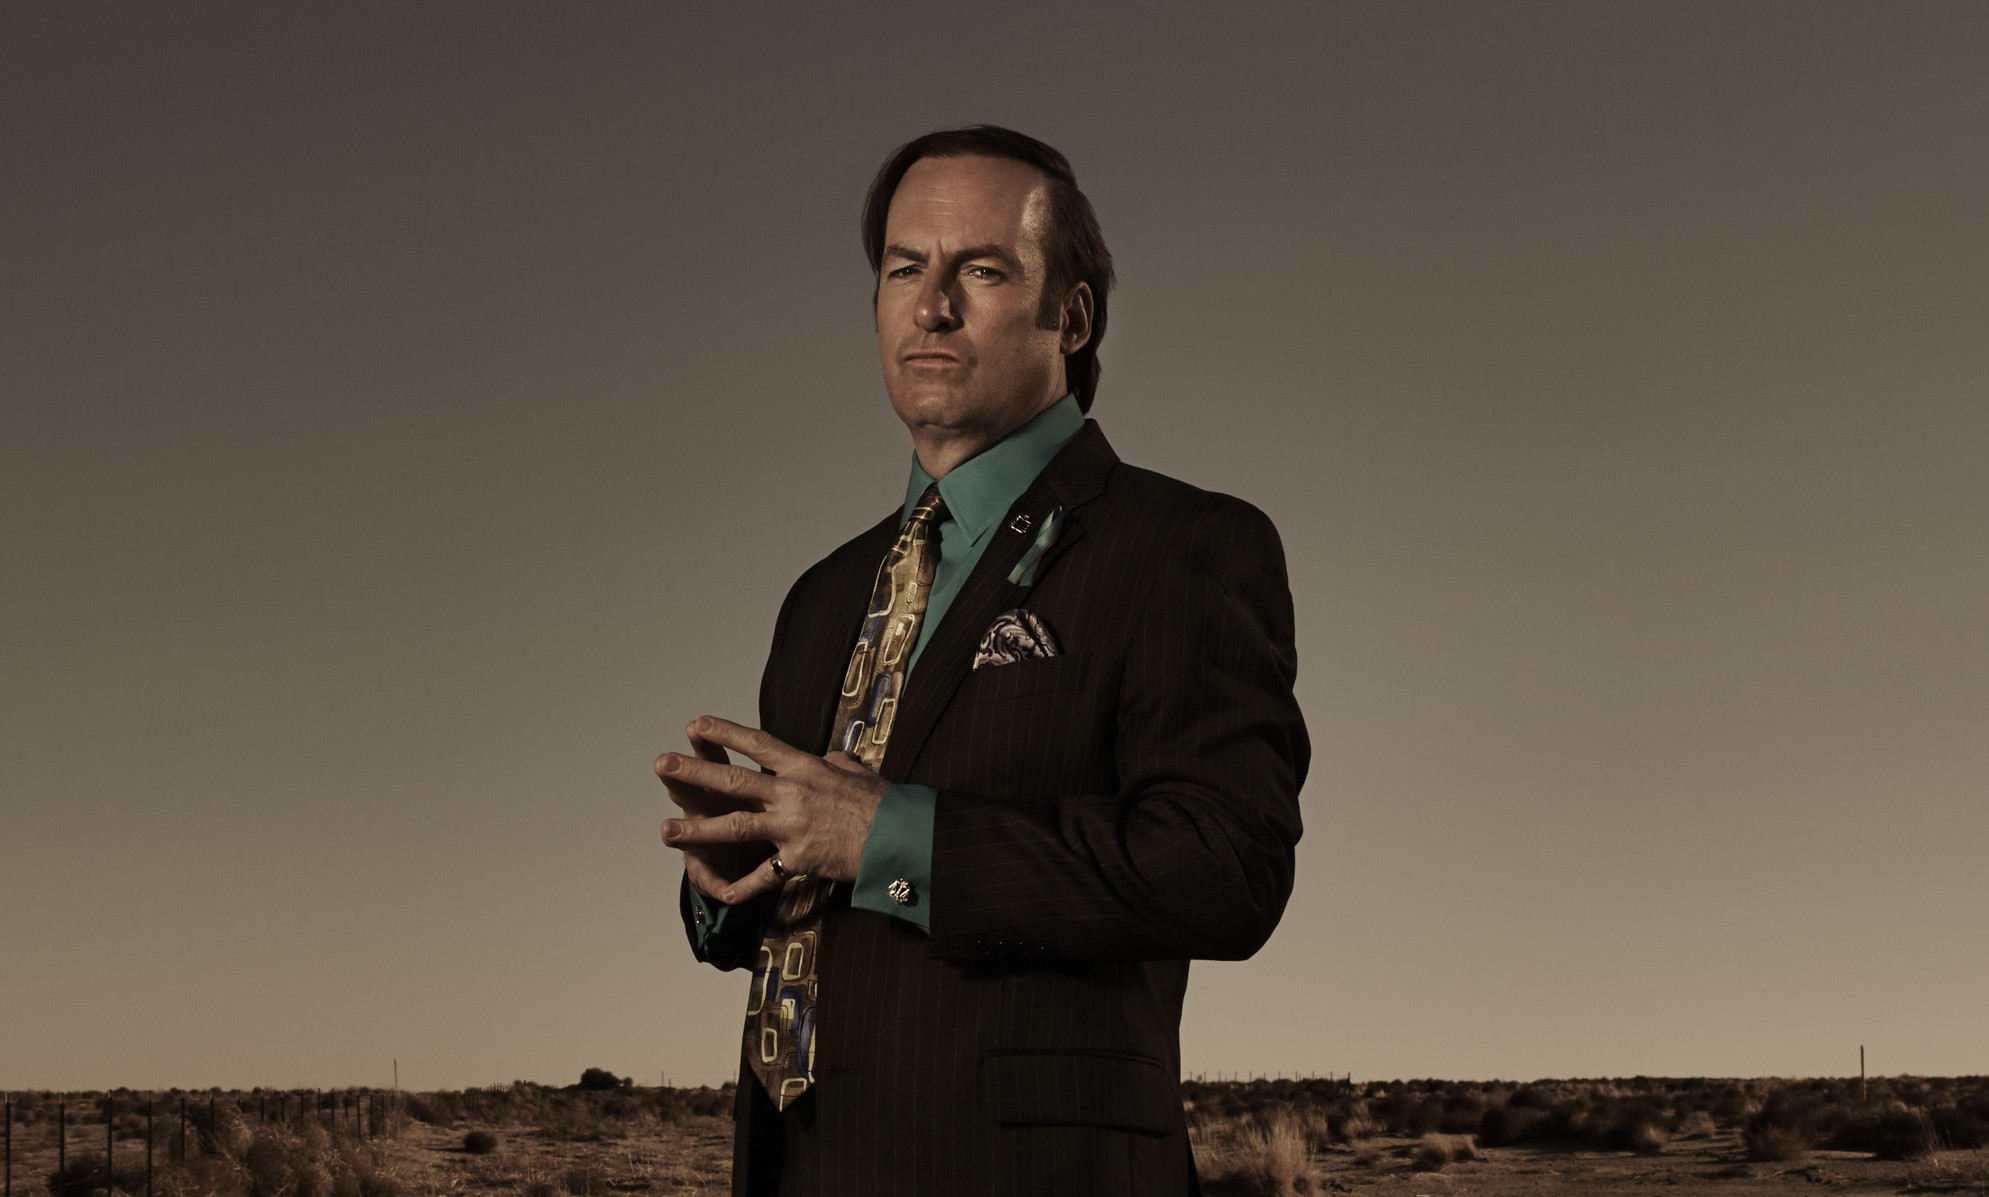 When does Better Call Saul start? Watch the first teaser trailer and find out